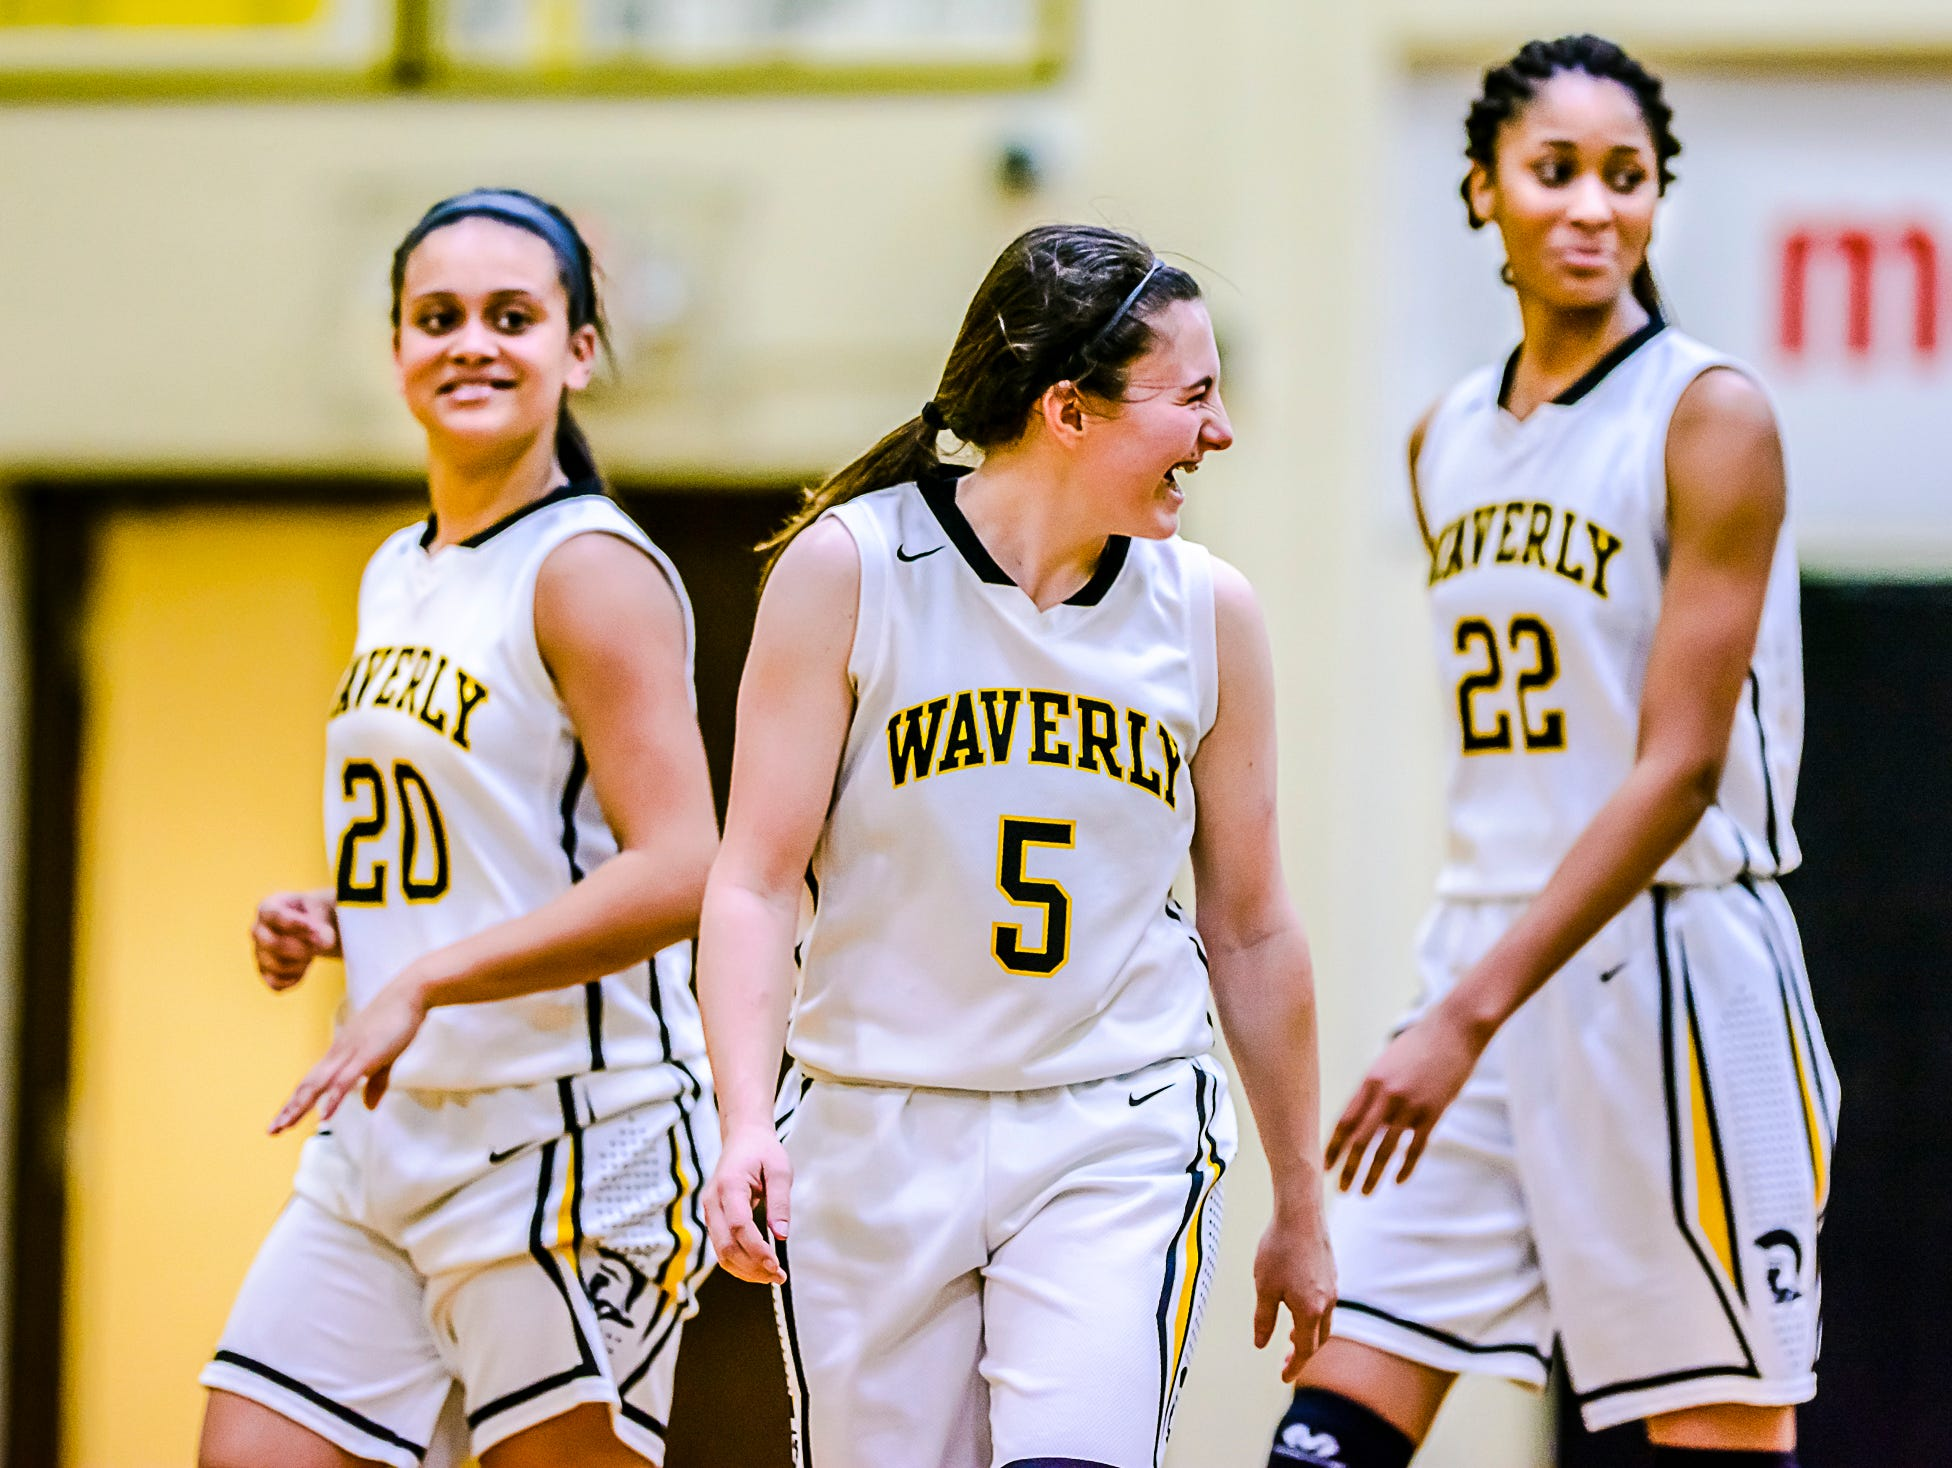 Jazlynn Wilcox, from left, Sarah Miller and Alisia Smith of Waverly celebrate after their come from behind win over Grand Ledge Tuesday February 9, 2016 in Delta Township. KEVIN W. FOWLER PHOTO